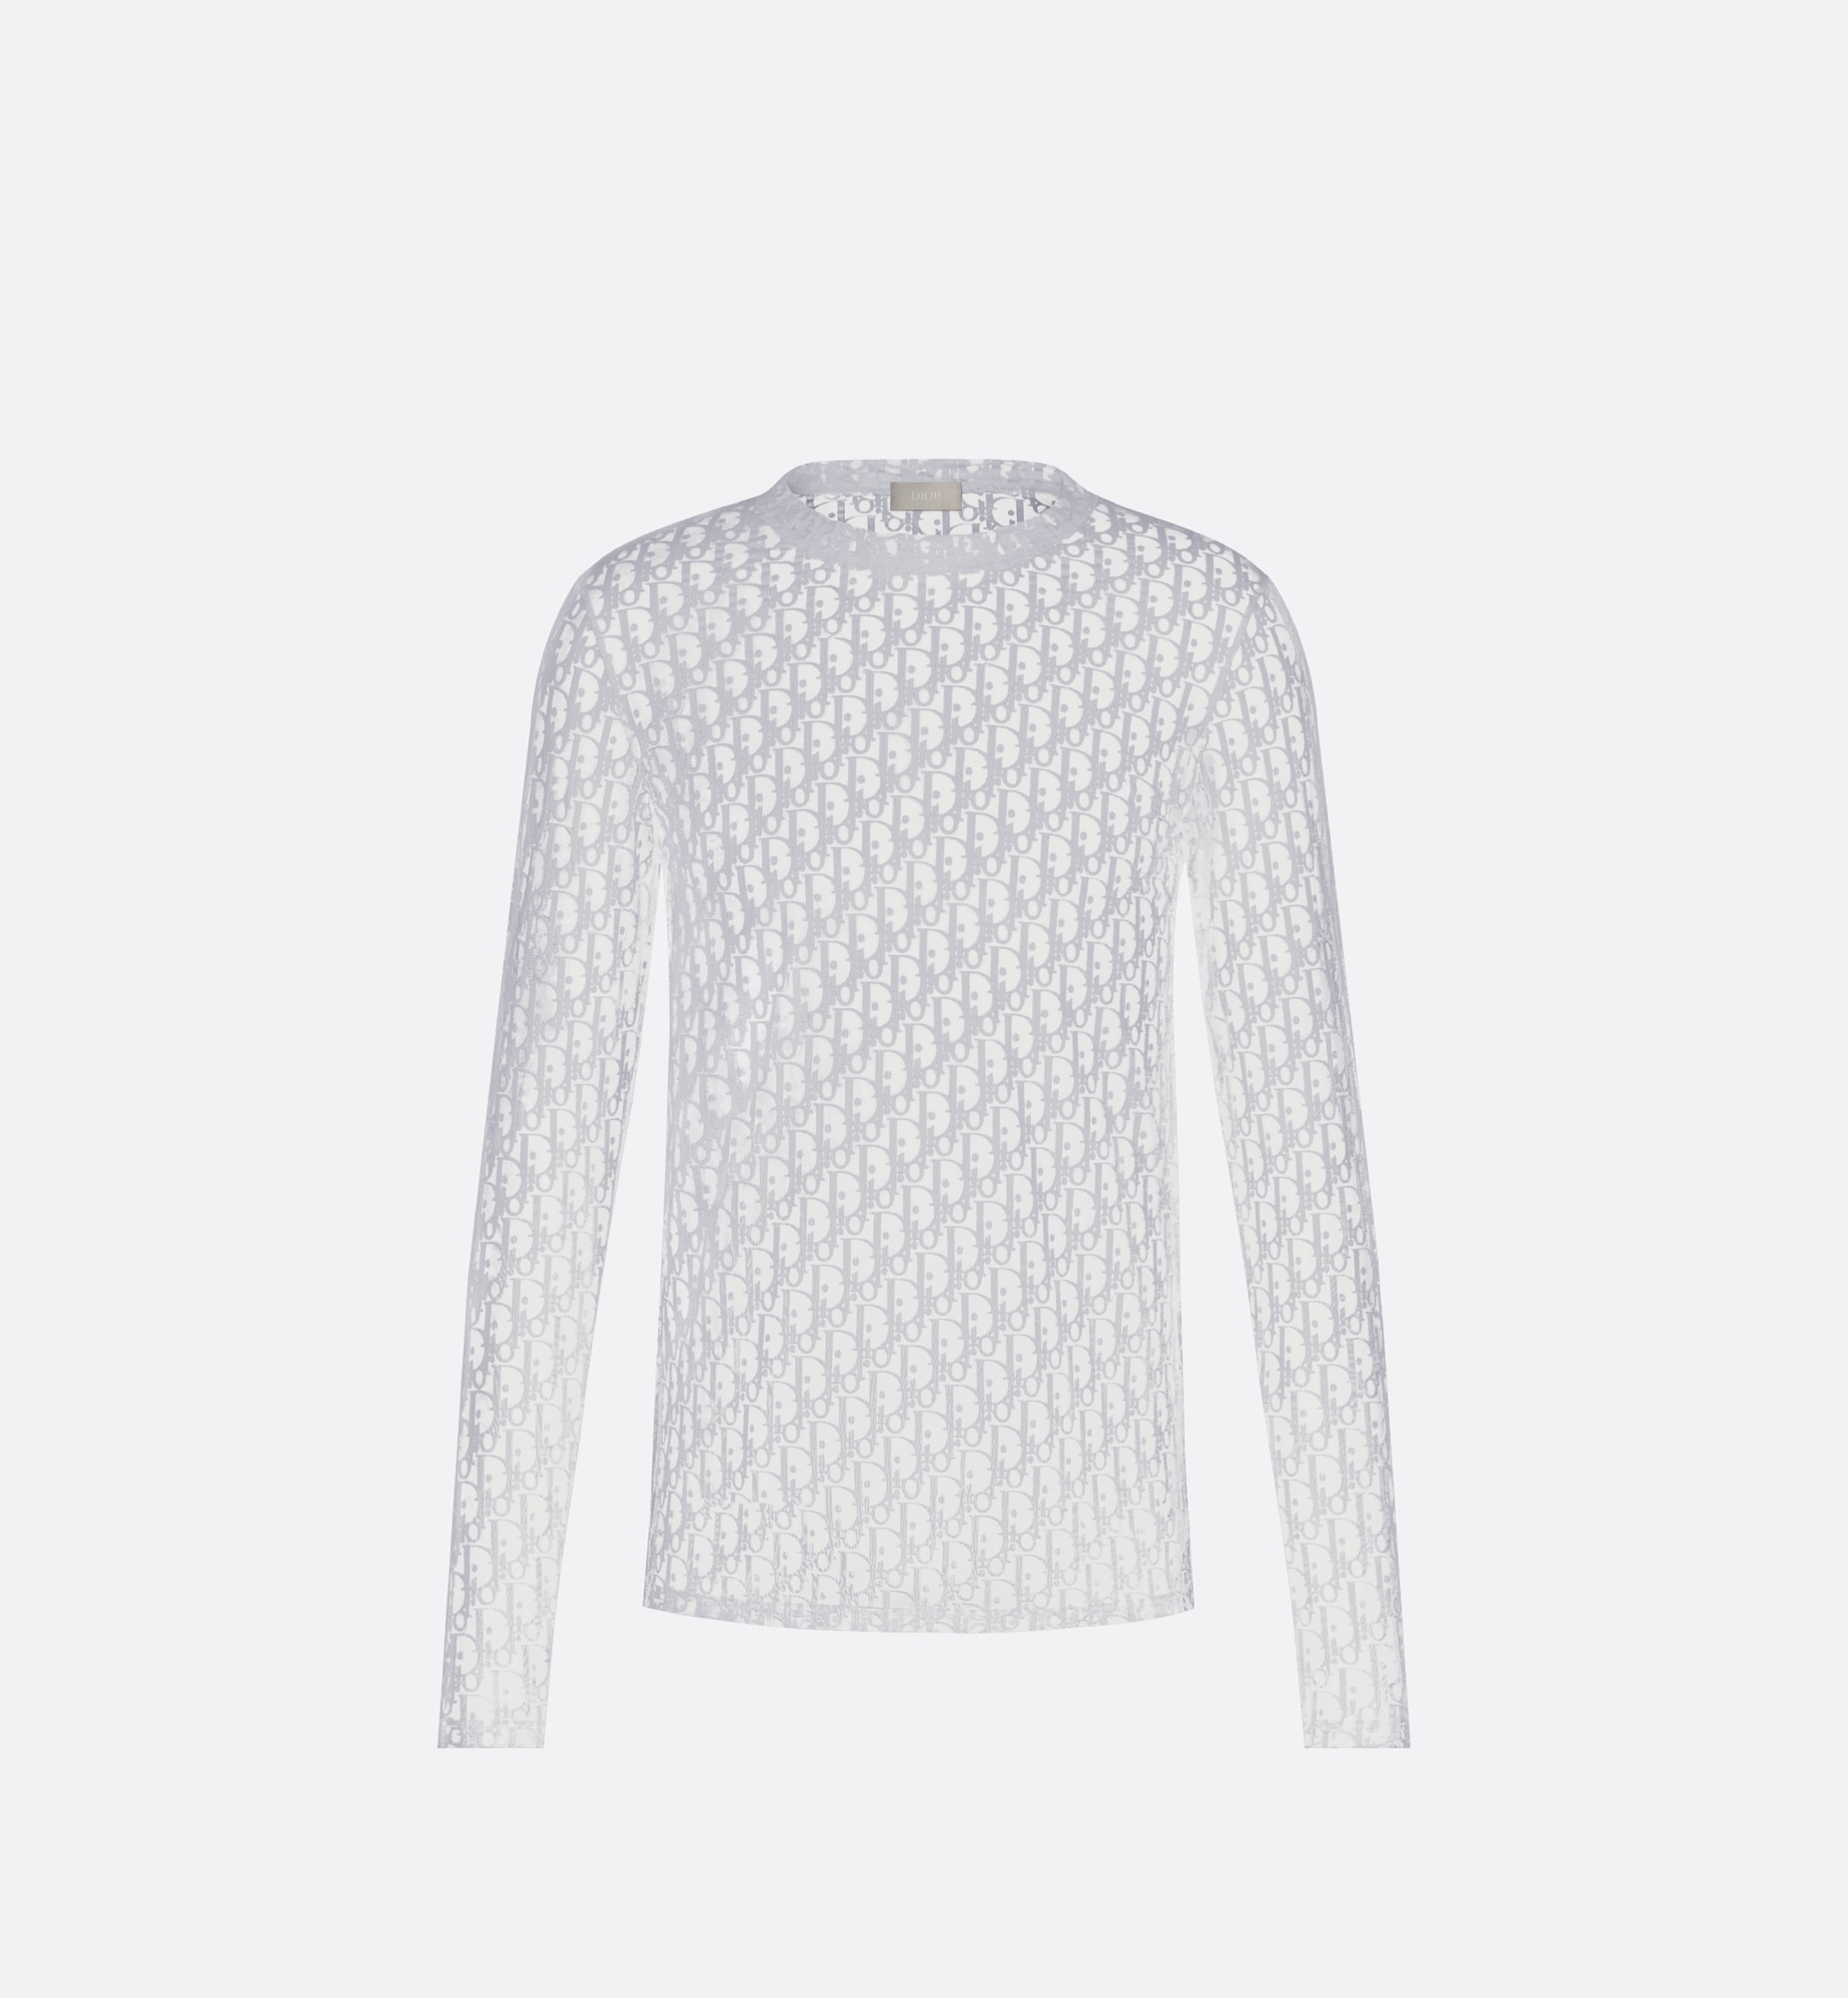 Long-Sleeved Dior Oblique T-Shirt Front view